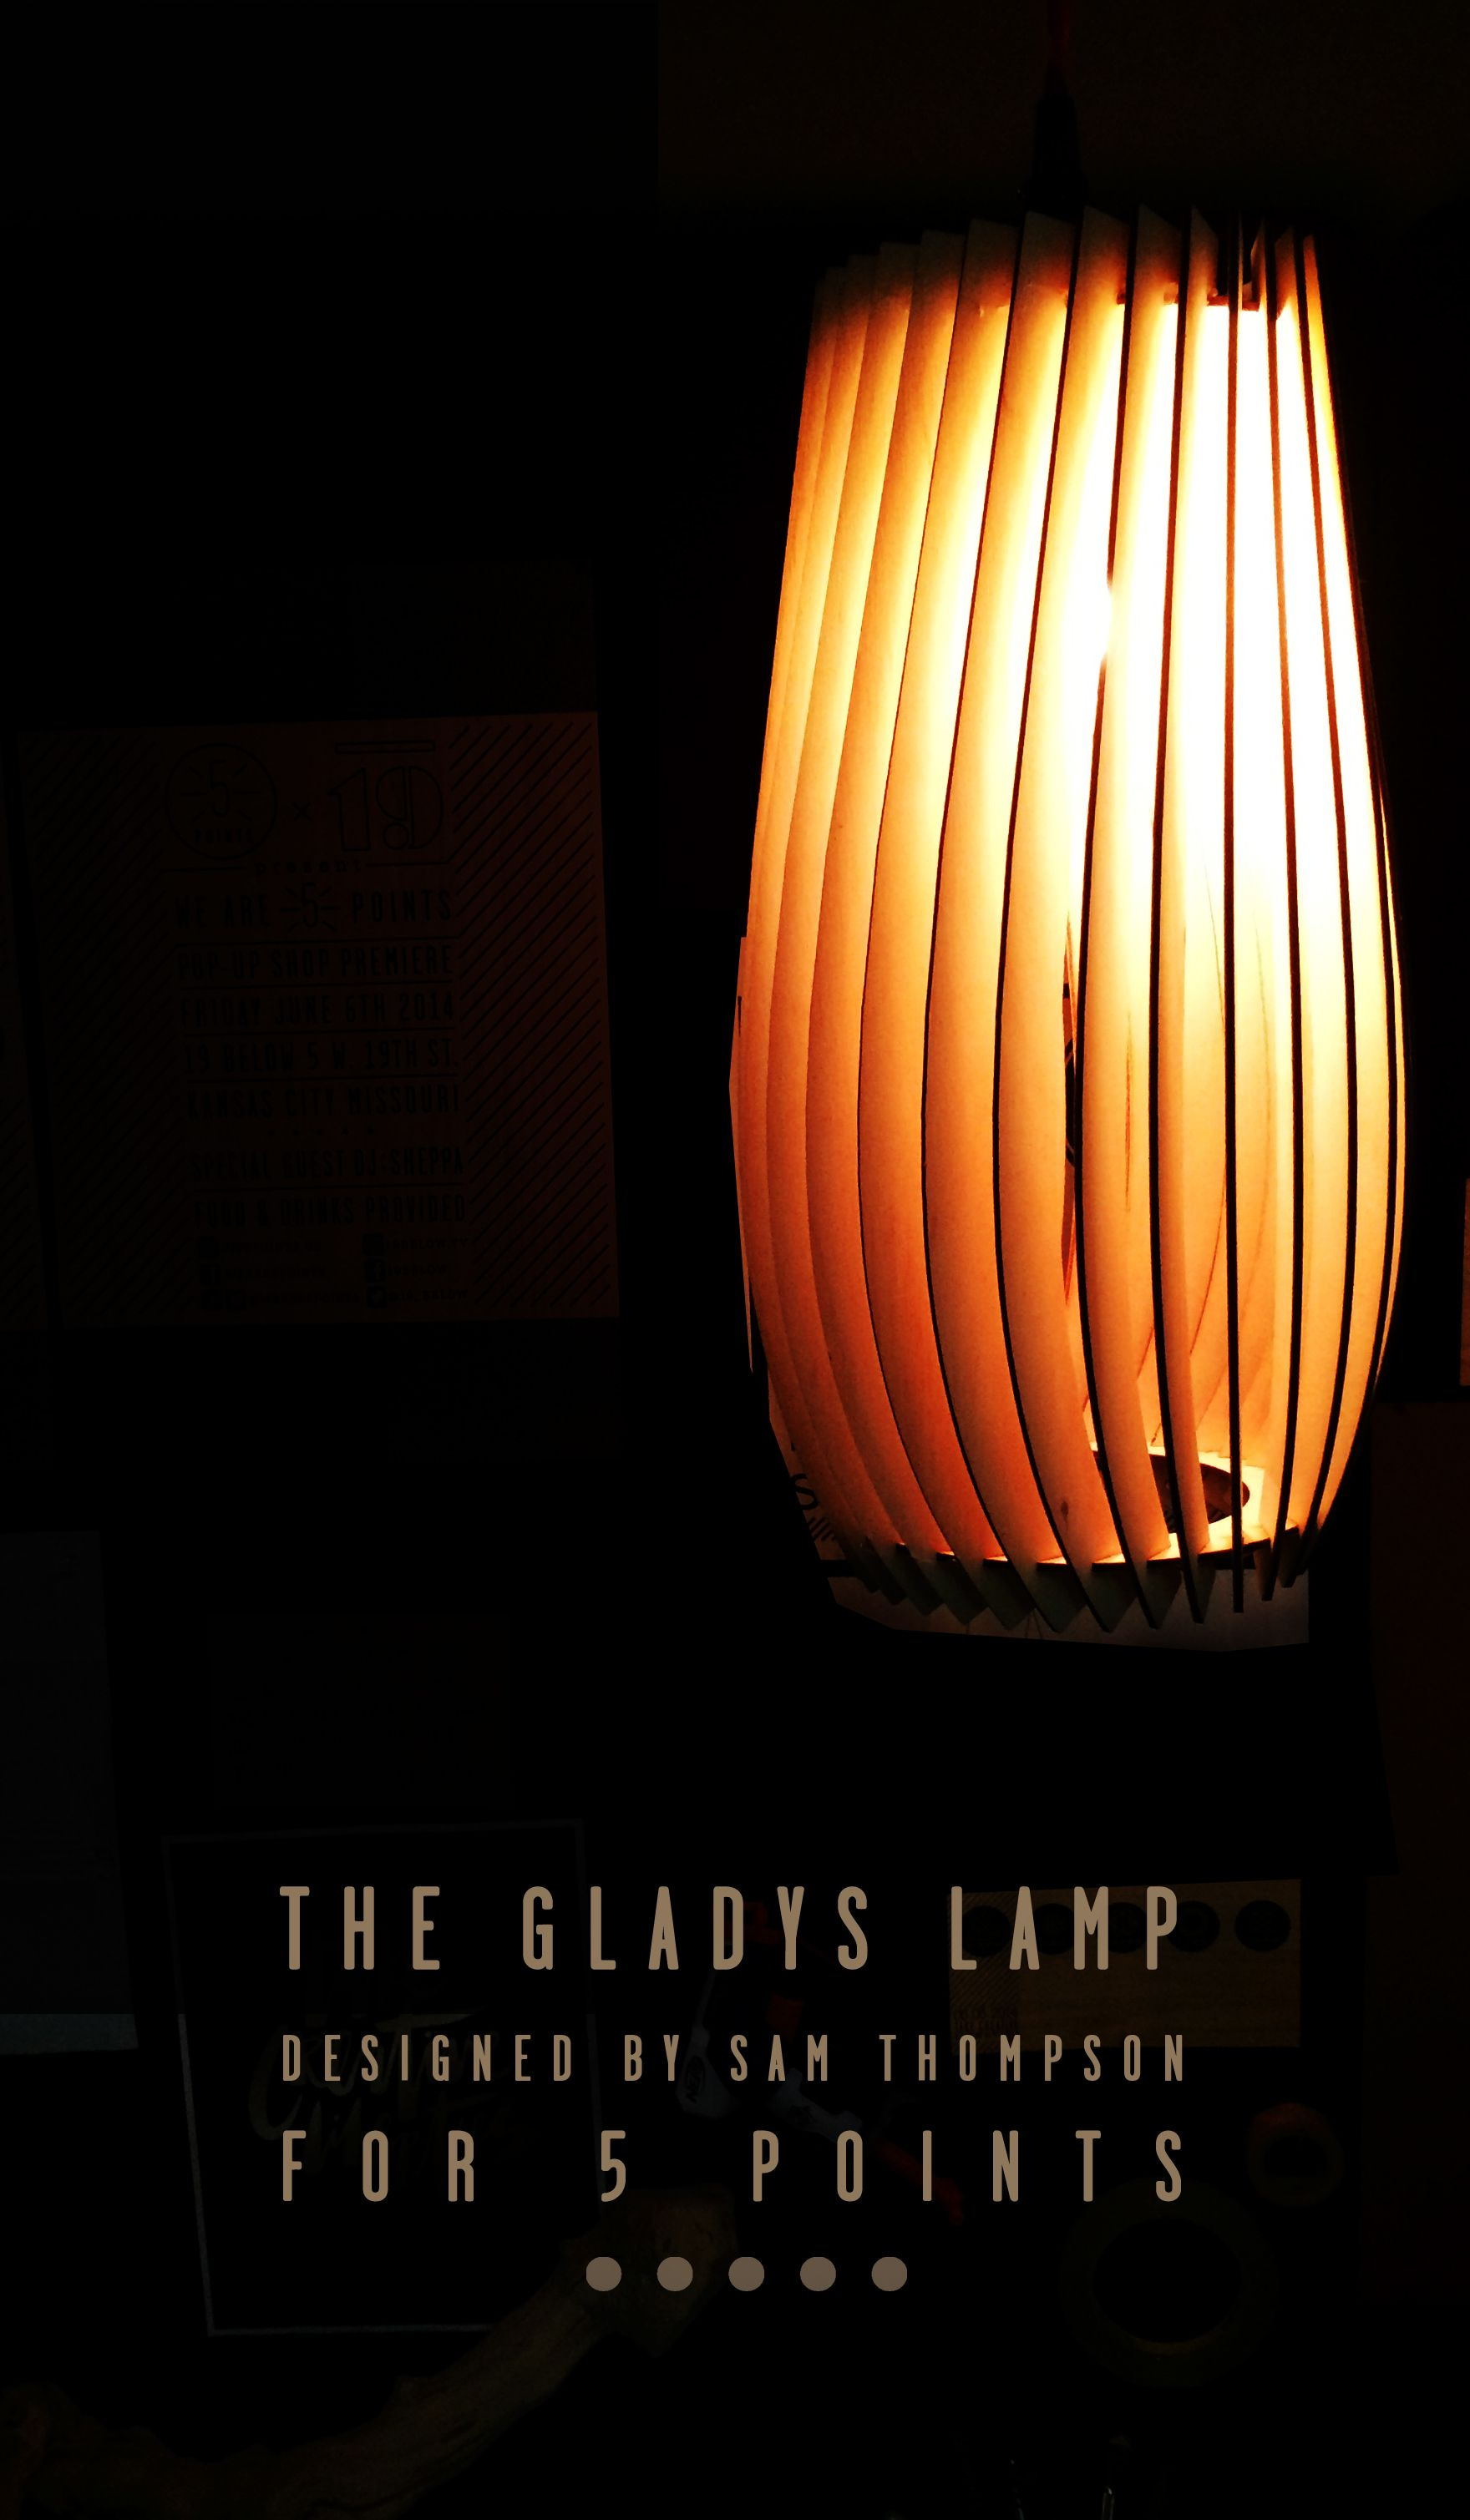 5 Points GLADYS Lamp laser cut from birch wood | Designed by Sam Thompson for 5 Points #lamp #wood #lasercut